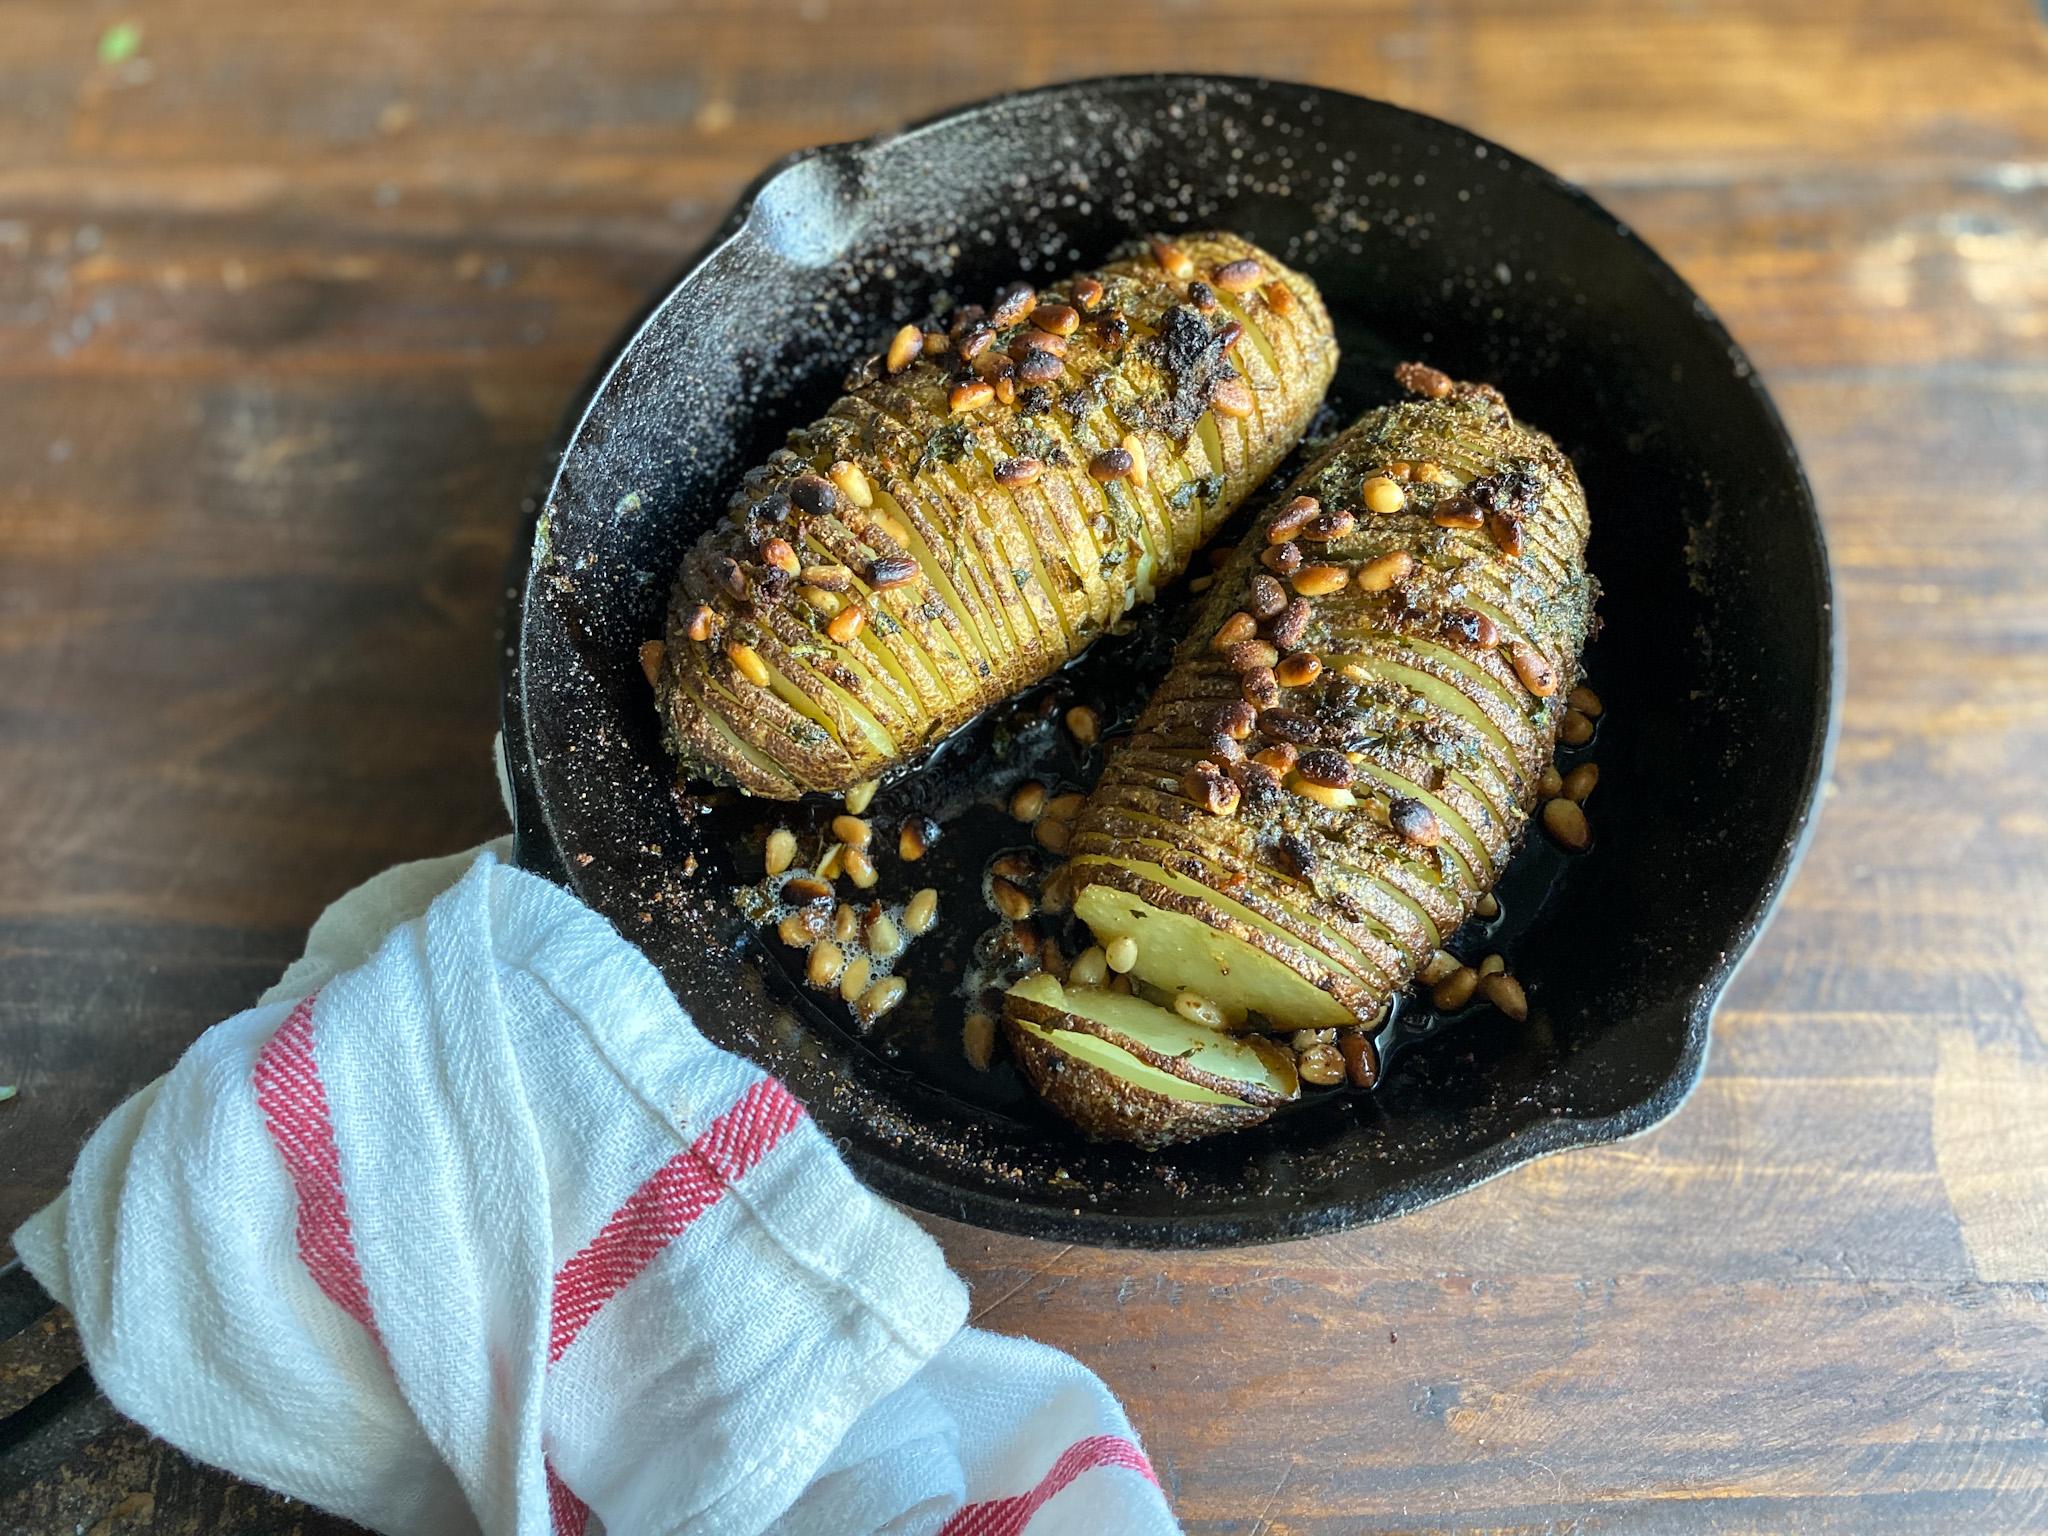 Hasselback Potatoes with Herb Butter with a different angle